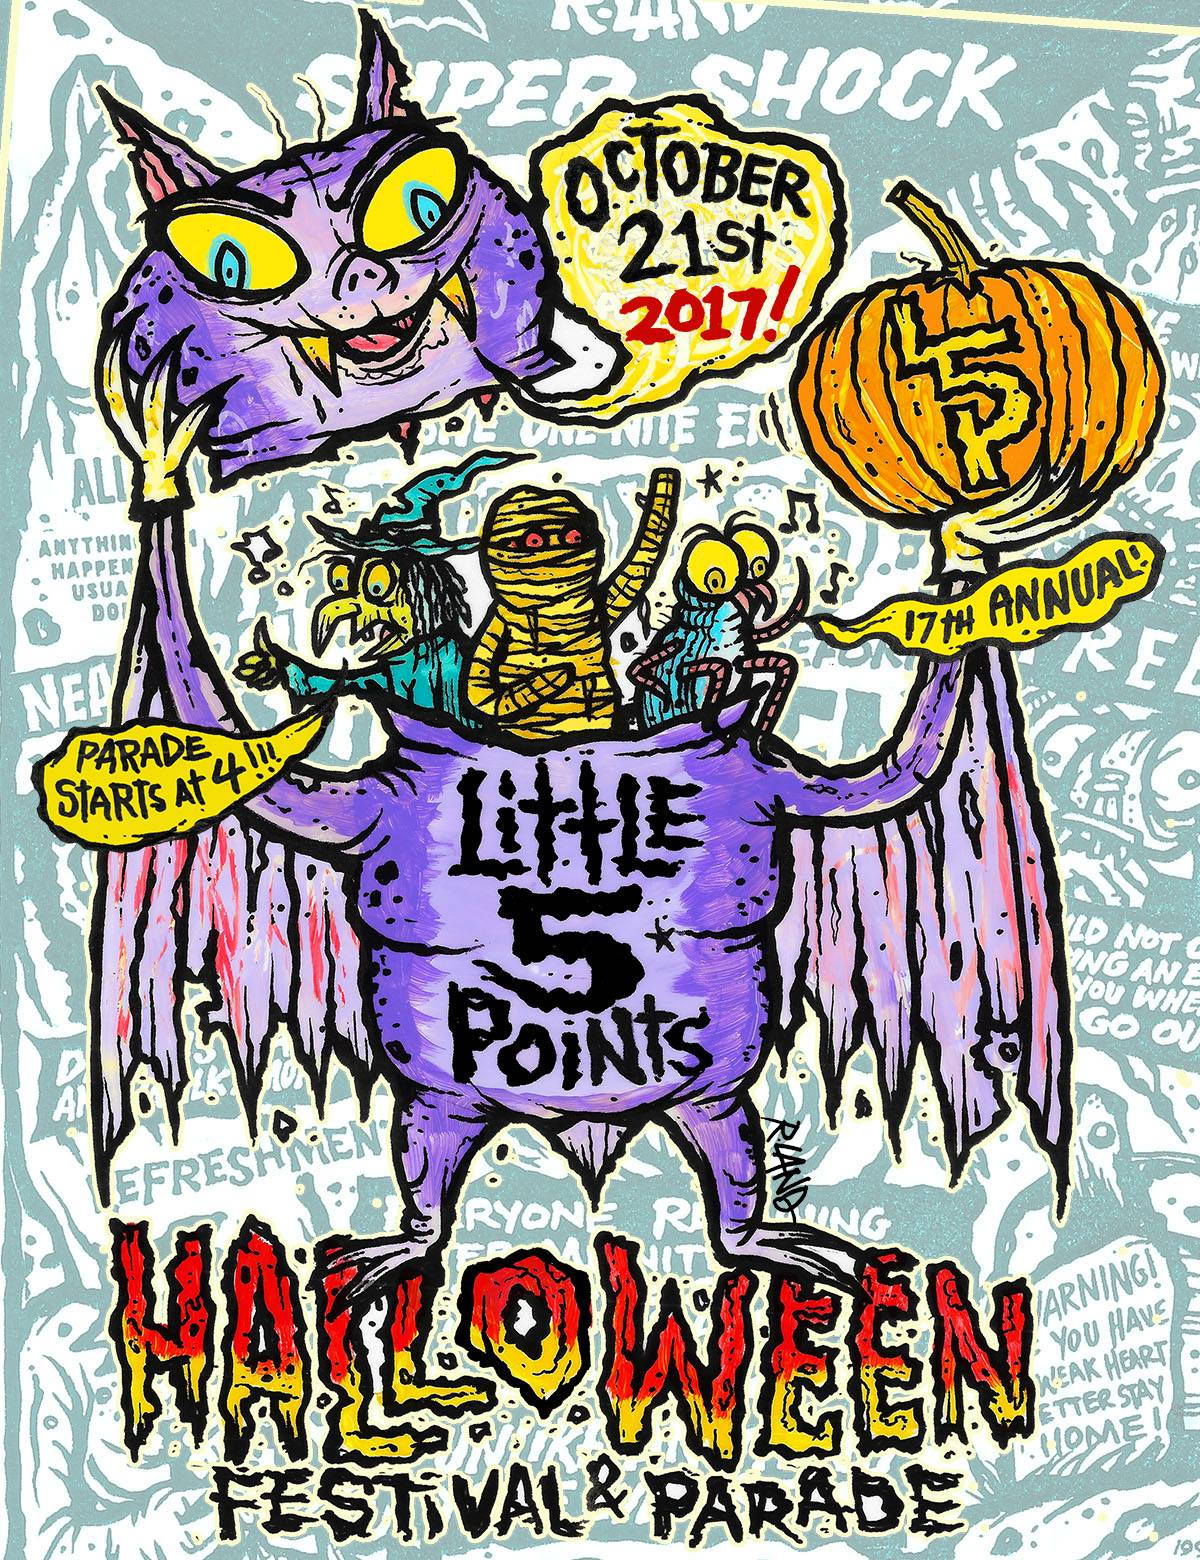 Live Music Schedule:  Star Bar Stage (located behind Star Bar)  3:00pm Crypt 24  4:00pm Little Five Points Halloween Parade  5:30pm The Dirty Doors: A Tribute  7:15pm Elzig  8:15pm Night Terrors  9:30pm Casket Creatures     Finley Plaza Stage (located in front of Criminal Records)  12:00pm BlackFox   1:00pm The Scragglers   2:00pm Sash The Bash   3:00pm AM Gold   4:00pm Little Five Points Halloween Parade   5:30pm Southern Ska Syndicate   6:45pm The Delusionaires   7:45pm Cousin Dan   8:45pm Baby Baby    Star Bar Venue Stage   5:30pm DJ Romeo Cologne  10:00pm DJ Cristo Disco & Prince Presto